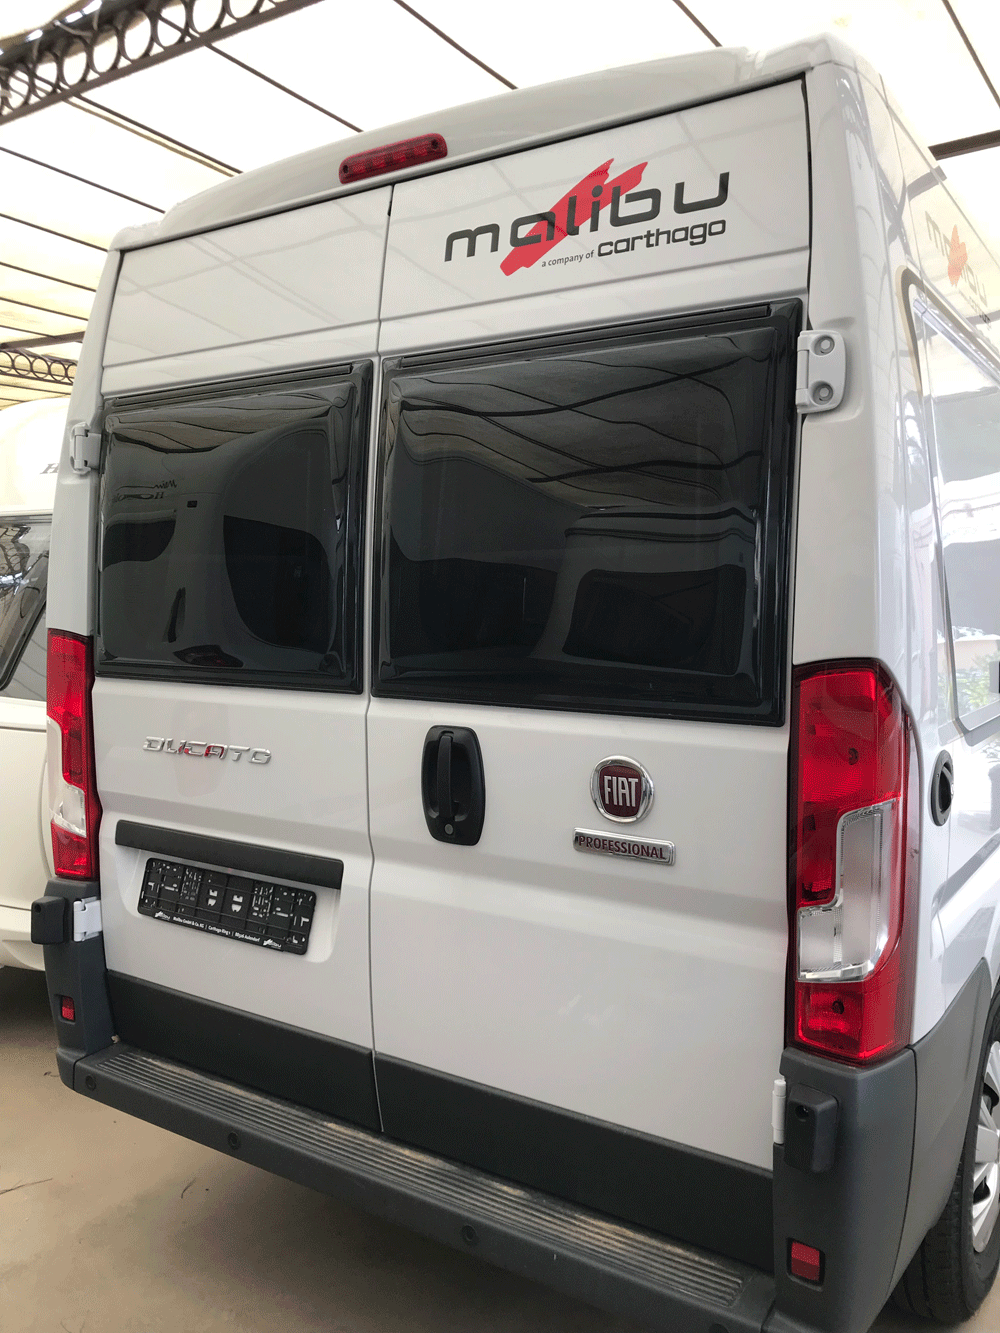 malibu 600 DB low bed caravar (11)